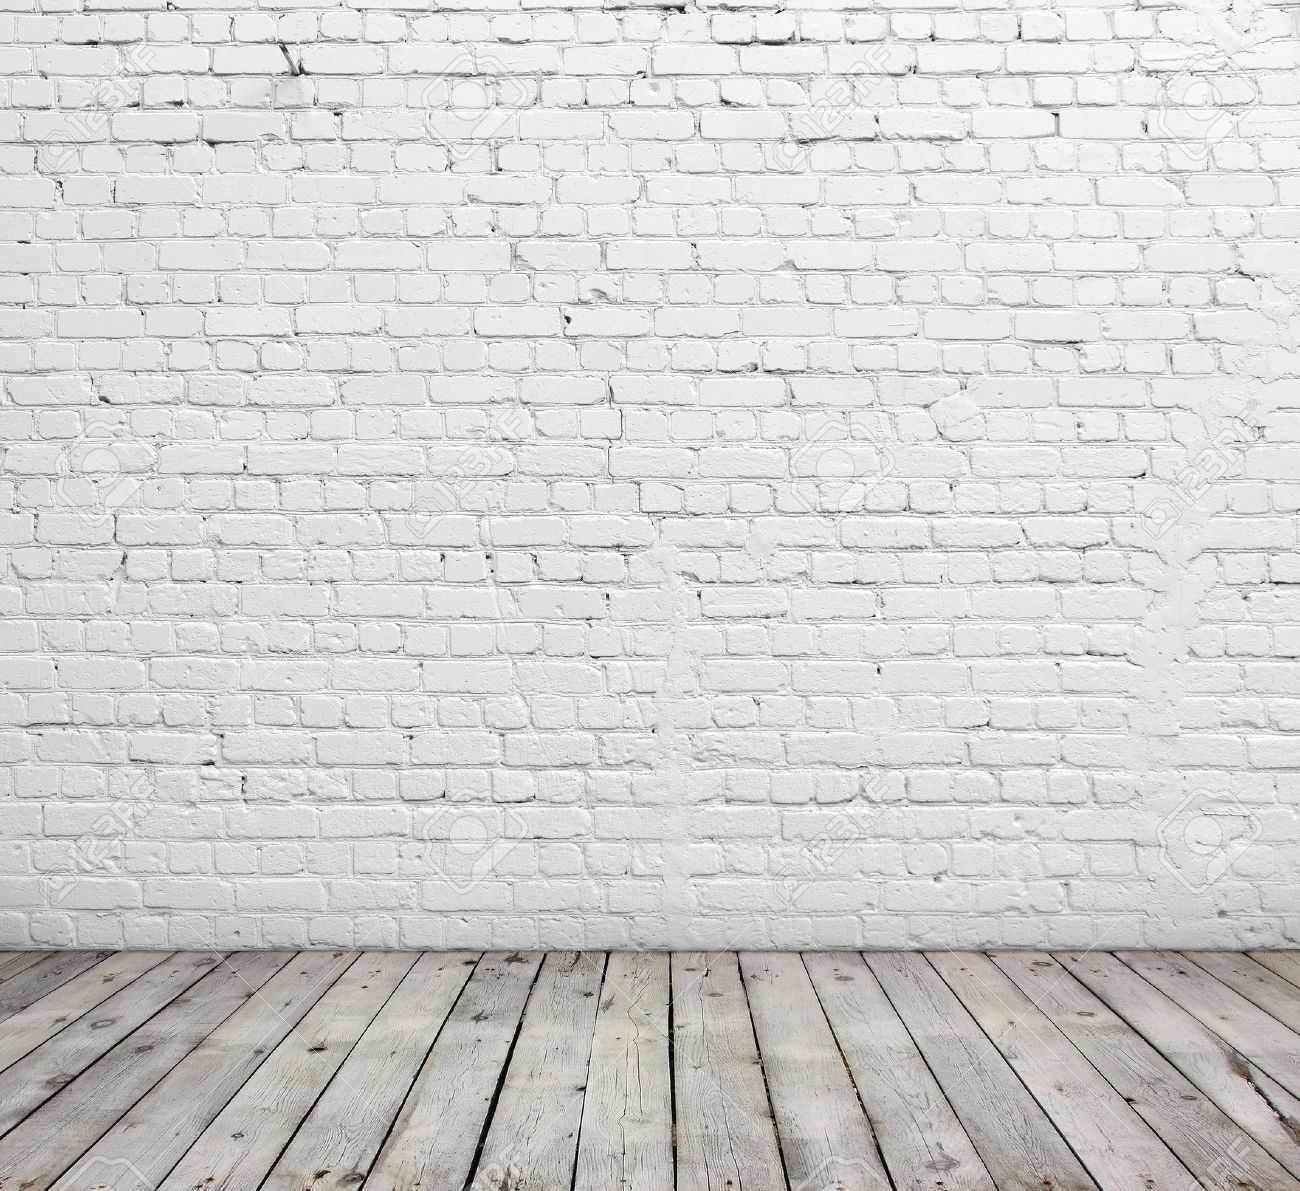 Old White Brick Wall And Wood Floor Stock Photo Picture And Royalty Free Image Image 30542631